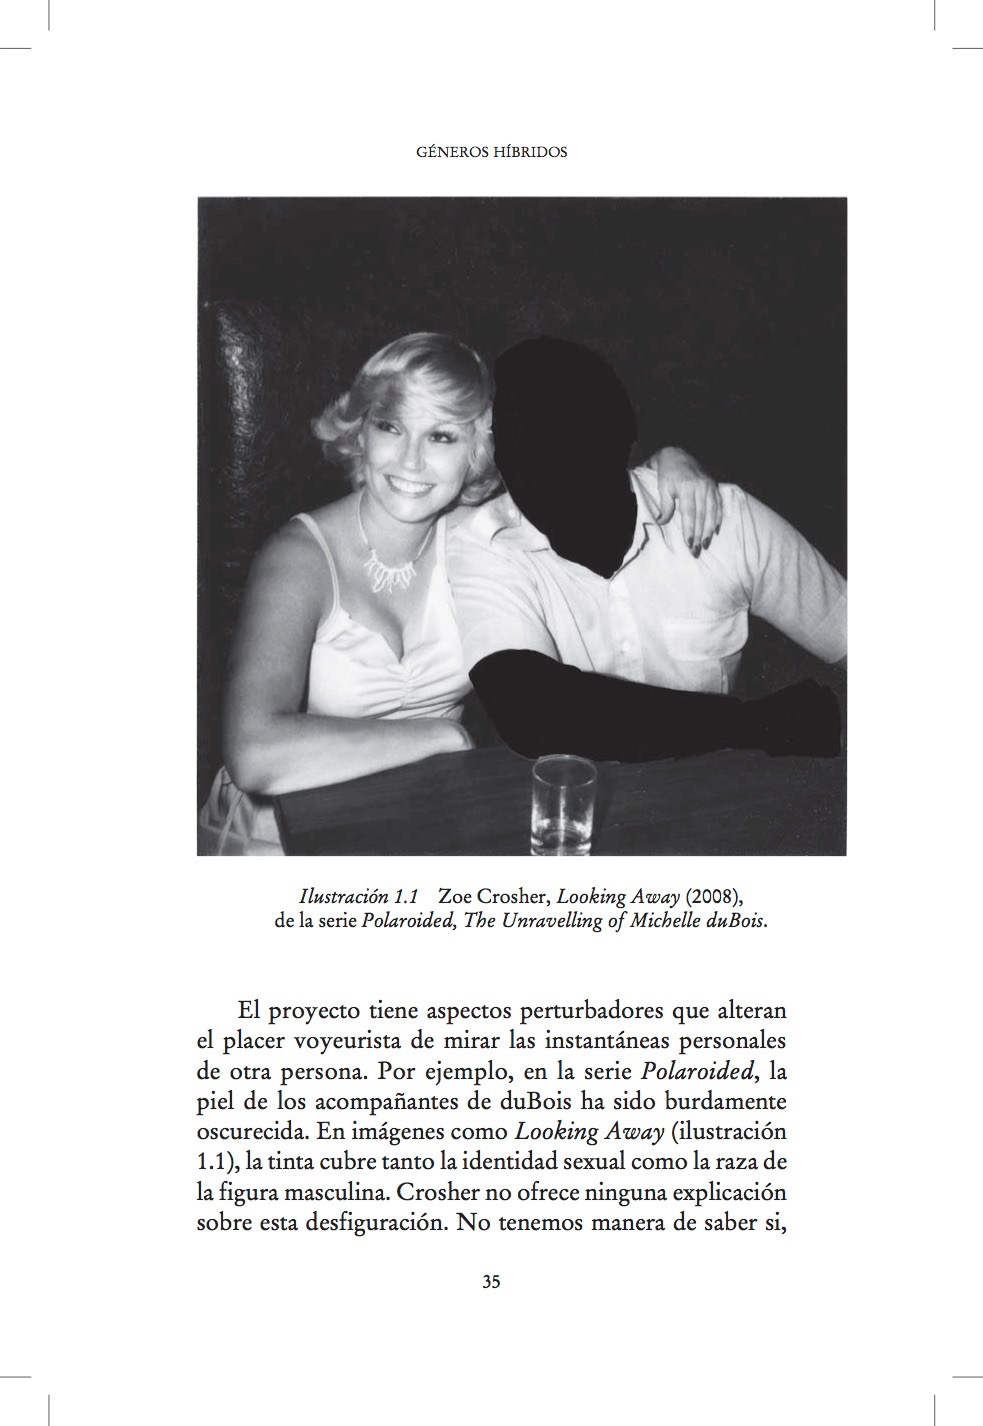 Why Contemporary Photography? Hybrid Gazes, spanish version